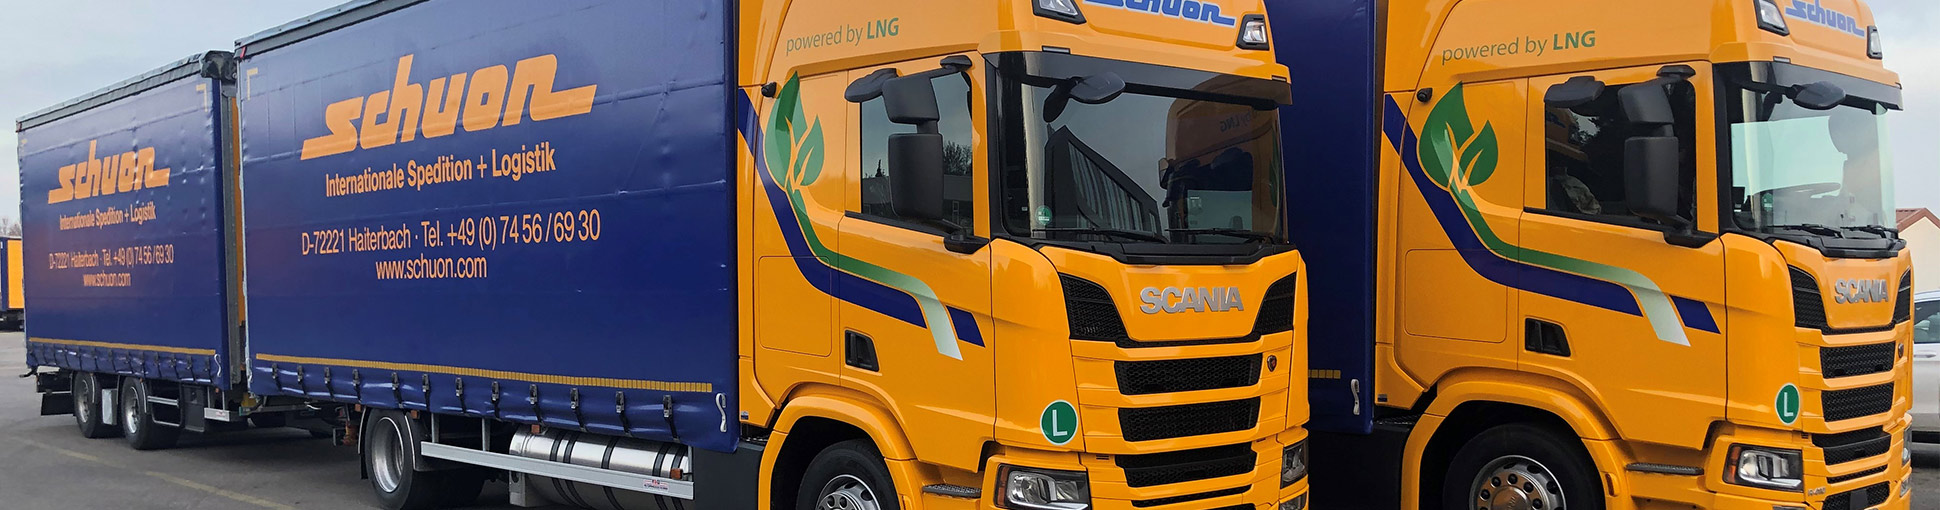 Transportlogistik Innovationen lng